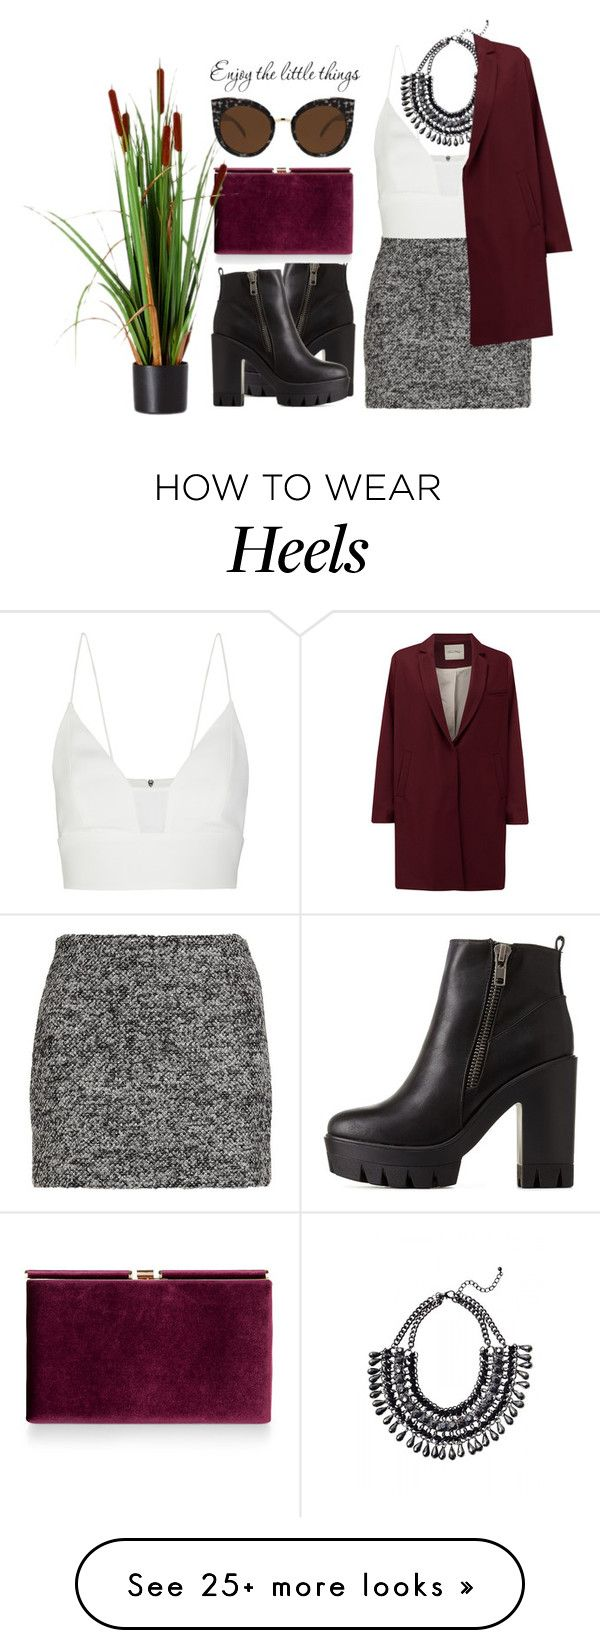 """""""#229"""" by vilte-m on Polyvore featuring moda, Charlotte Russe, Diane Von Furstenberg, Monsoon, Quay, Narciso Rodriguez y American Vintage"""